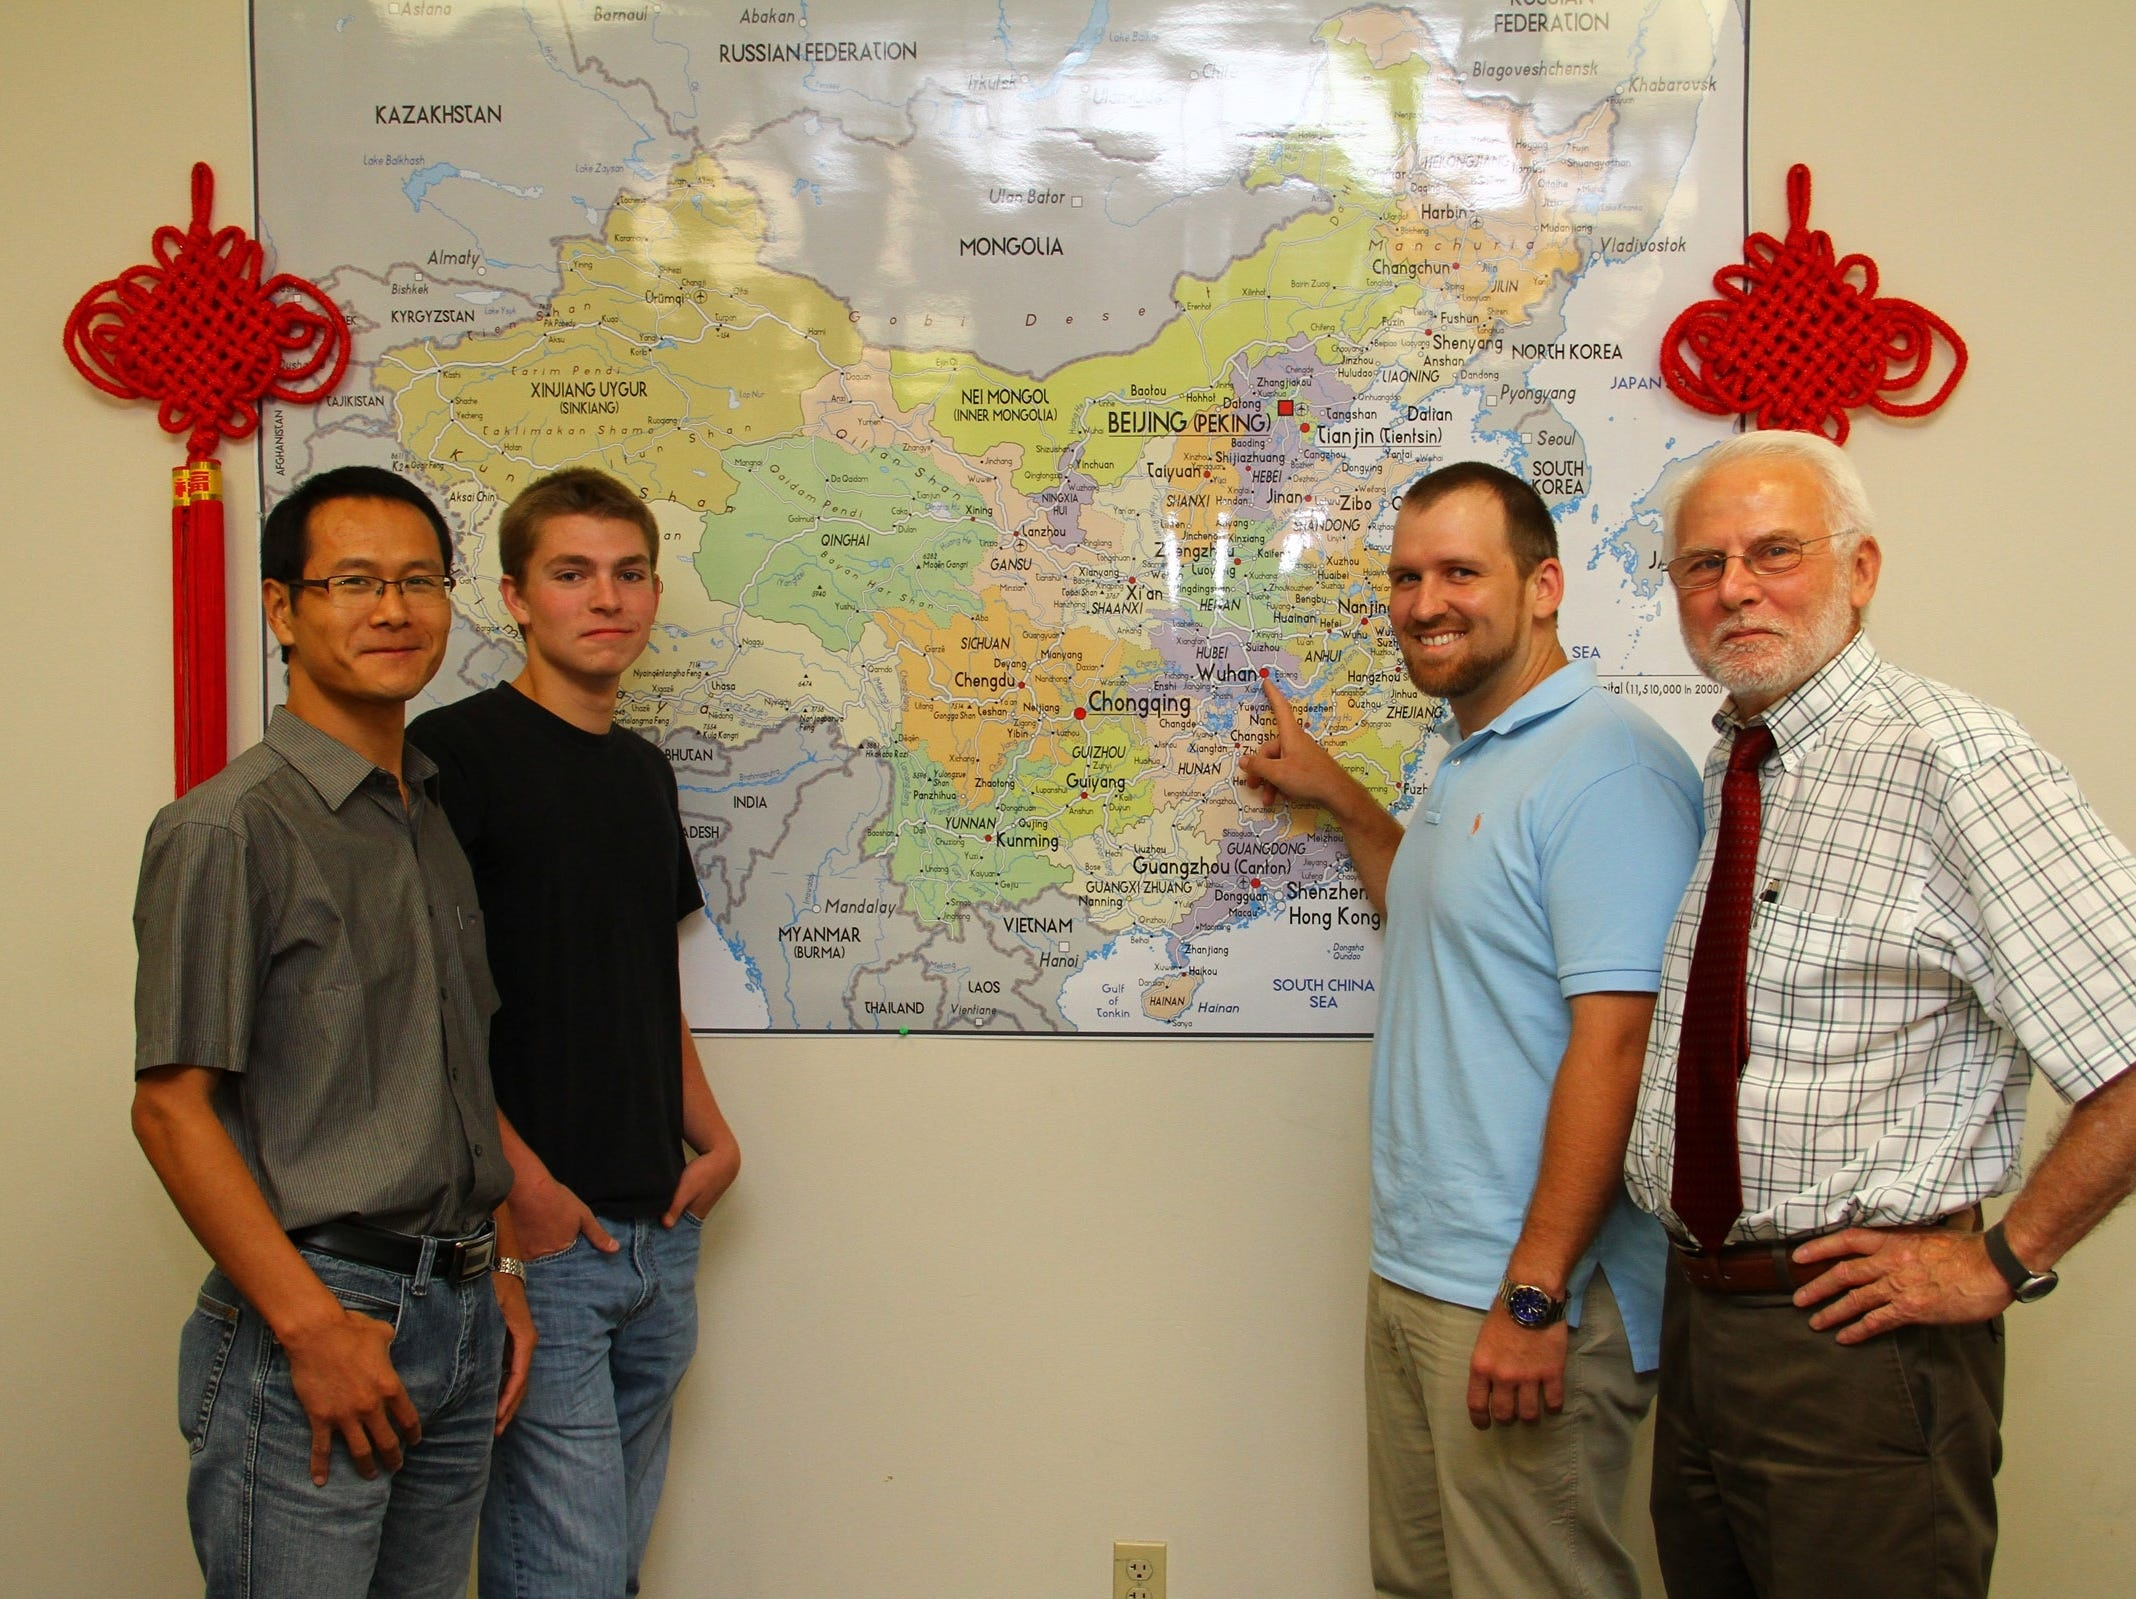 Two Pellissippi State Community College students, Jack Little and Chris Summerville, received scholarships to study in China during the 2011-12 academic year. They will return to Knoxville in the spring. The experience gives them the chance to pursue their studies of Chinese language and culture while immersed in the country's daily life. From left, are, instructor Qiao Gui-qiang, Little, Summerville and Milton Grimes, now-retired executive director of Tennessee Consortium for International Studies